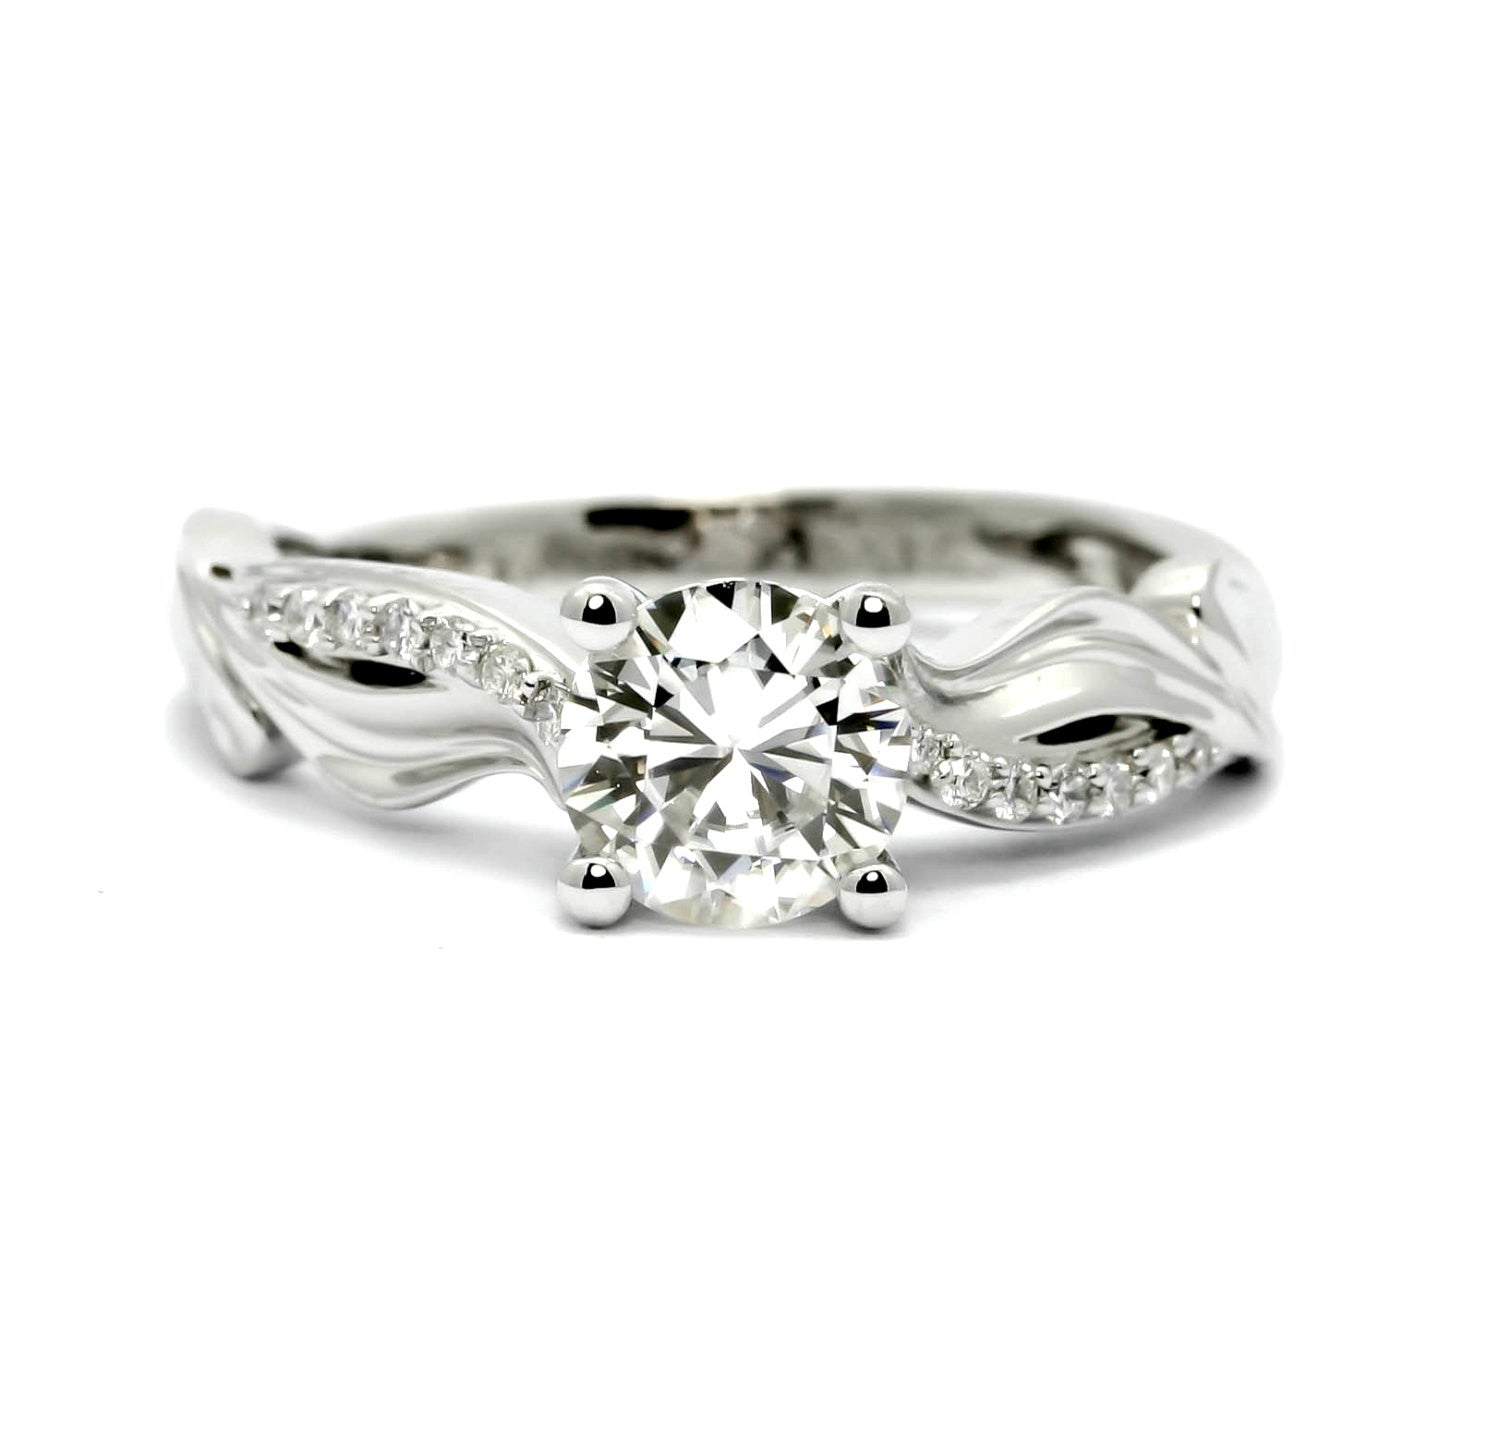 Unique Diamond Engagement Ring With .75 Carat GIA Certified Diamond Center Stone, Anniversary Ring - 75WDY11666SE